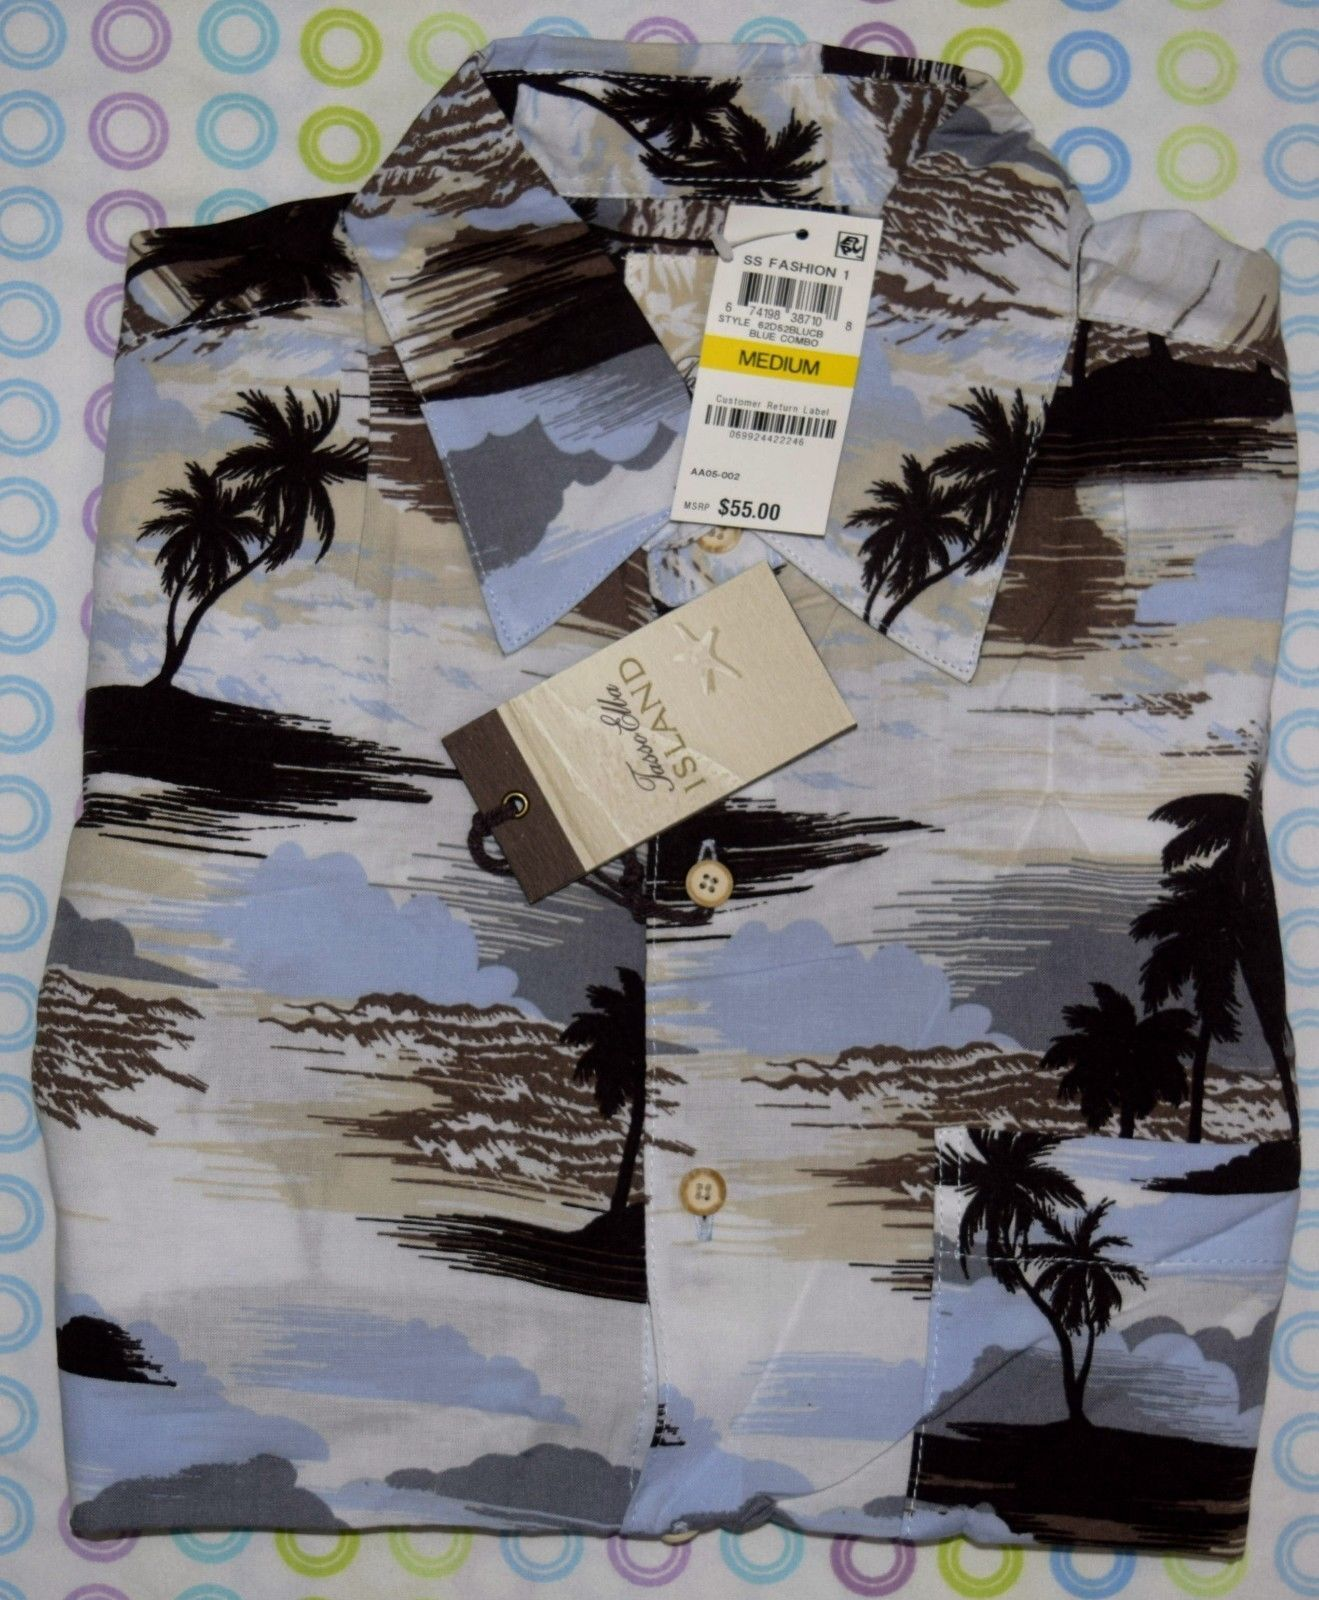 NWT TASSO ELBA ISLAND MEN'S SHORT SLEEVE TROPICAL PRINT SHIRT blueE COMBO MEDIUM